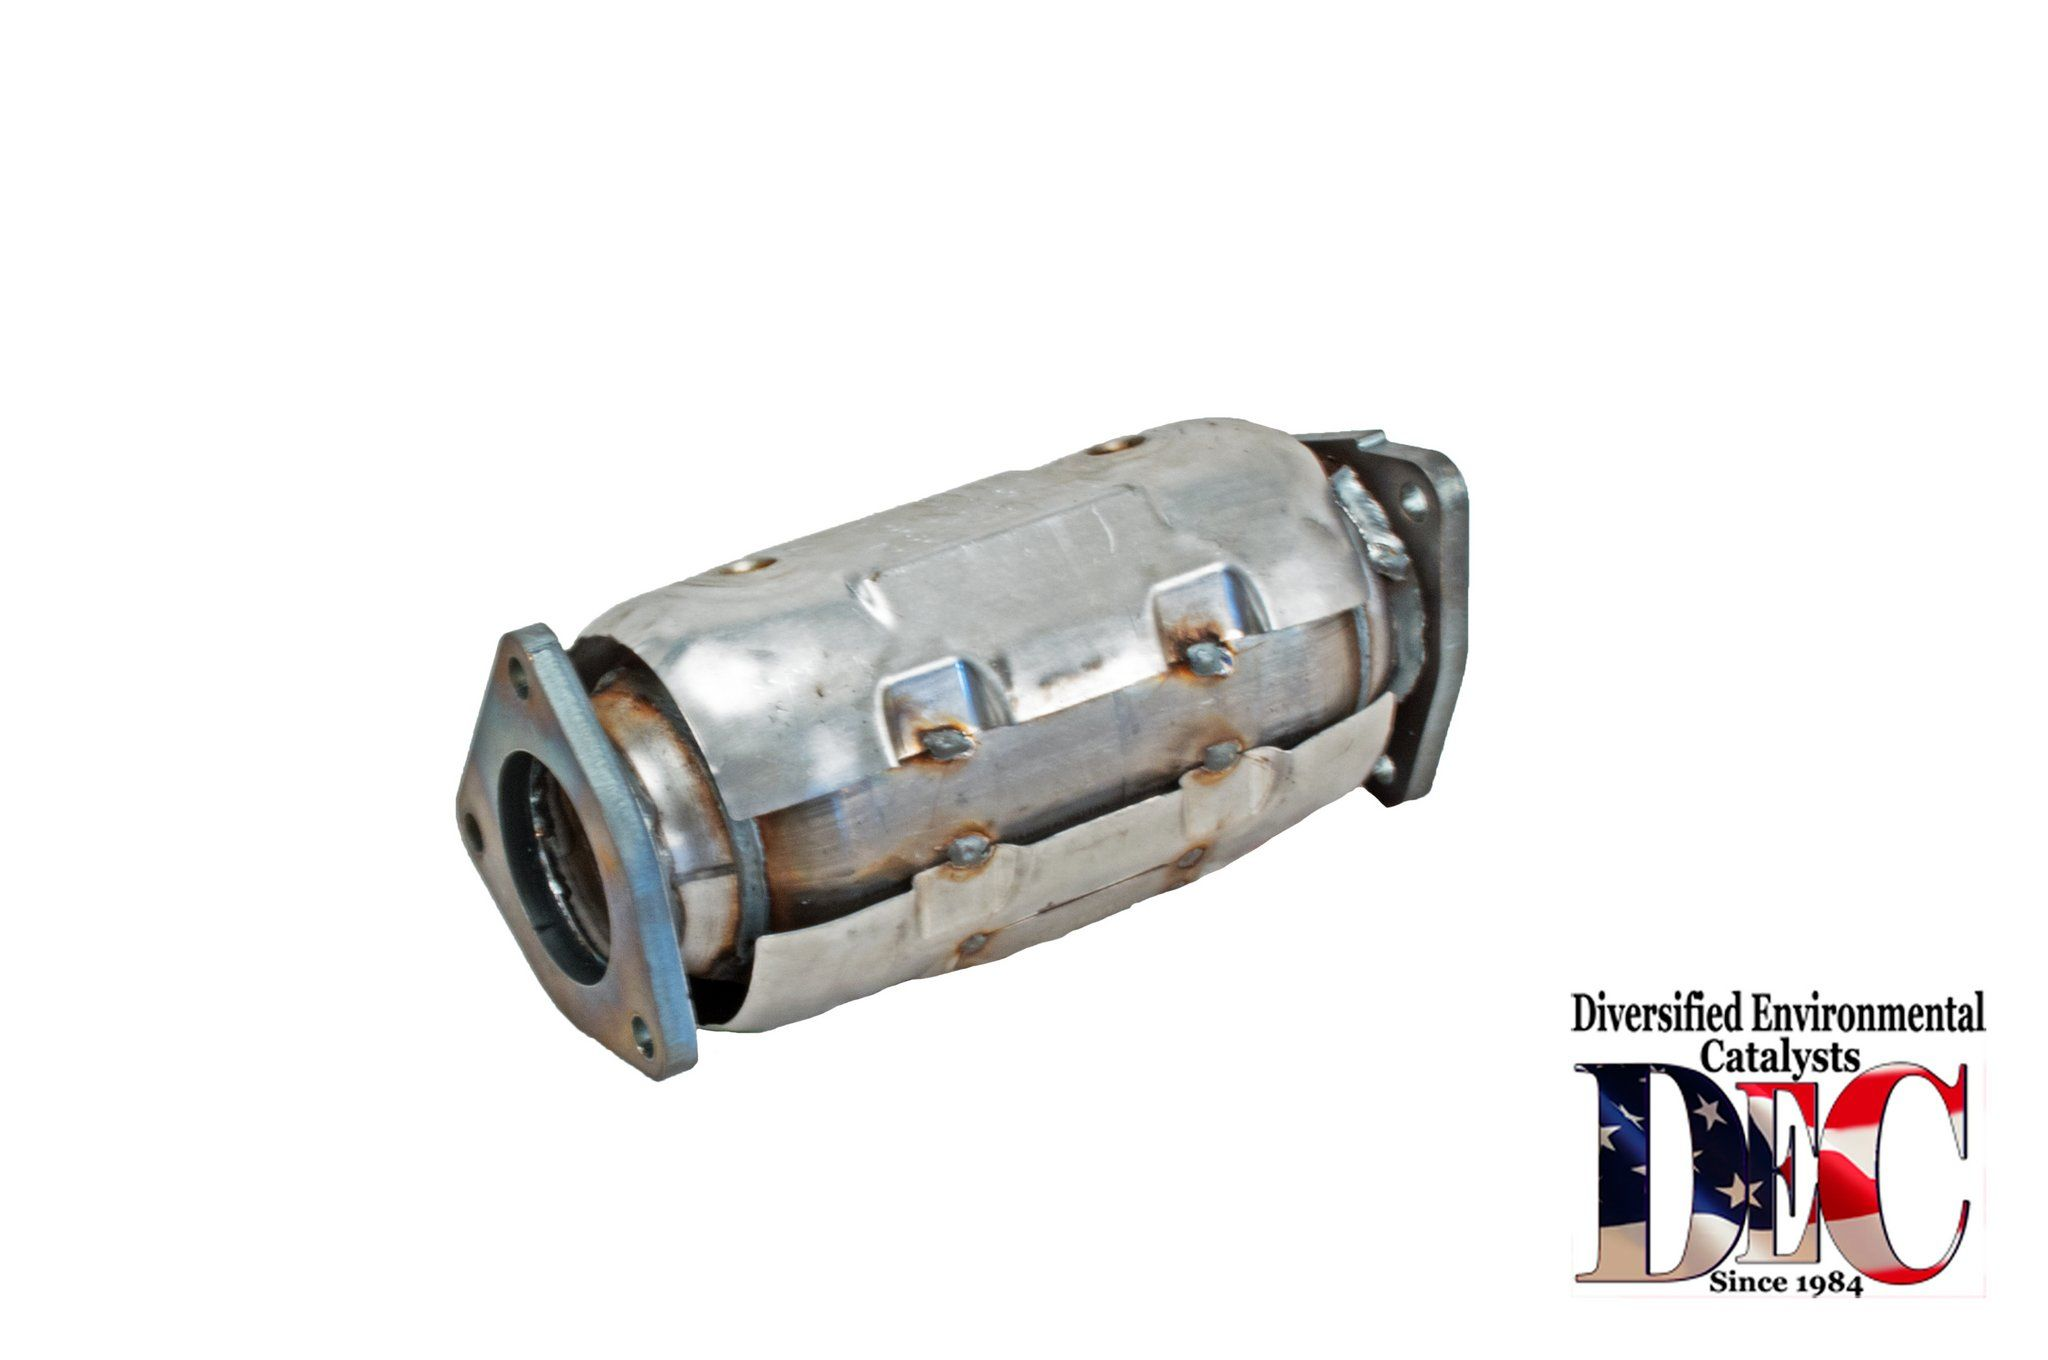 acura tl catalytic converter replacement bosal dec eastern rh go parts com Acura TL 6-Speed Manual Acura TL 6-Speed Manual